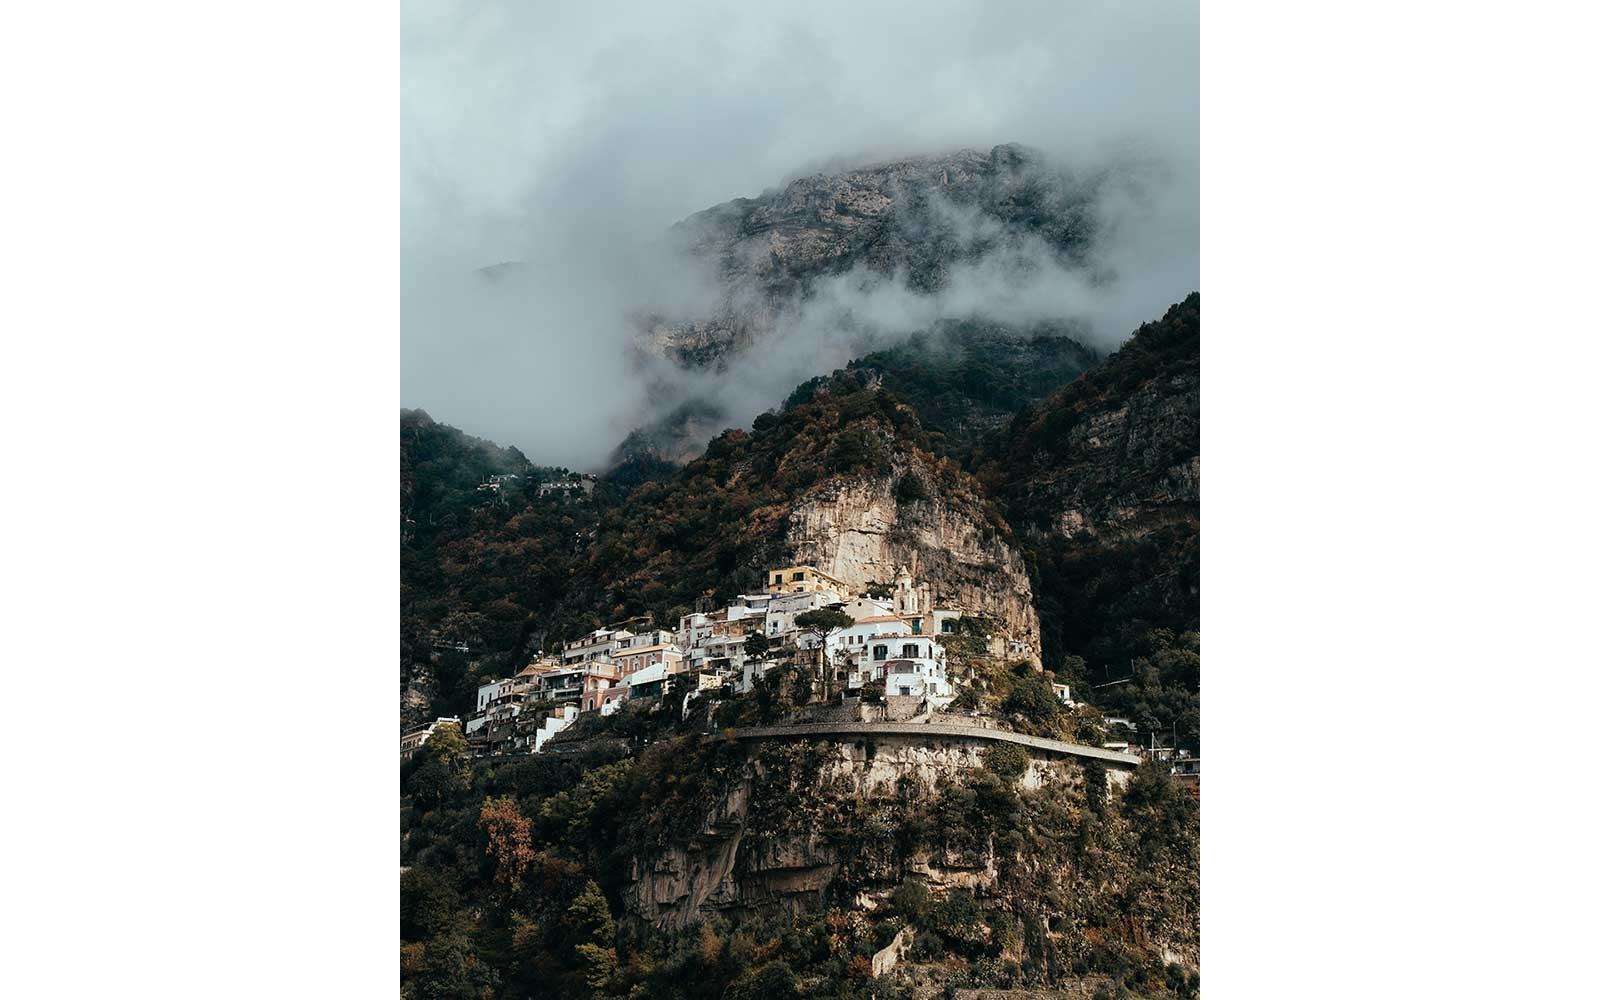 Foggy view of Positano, Italy